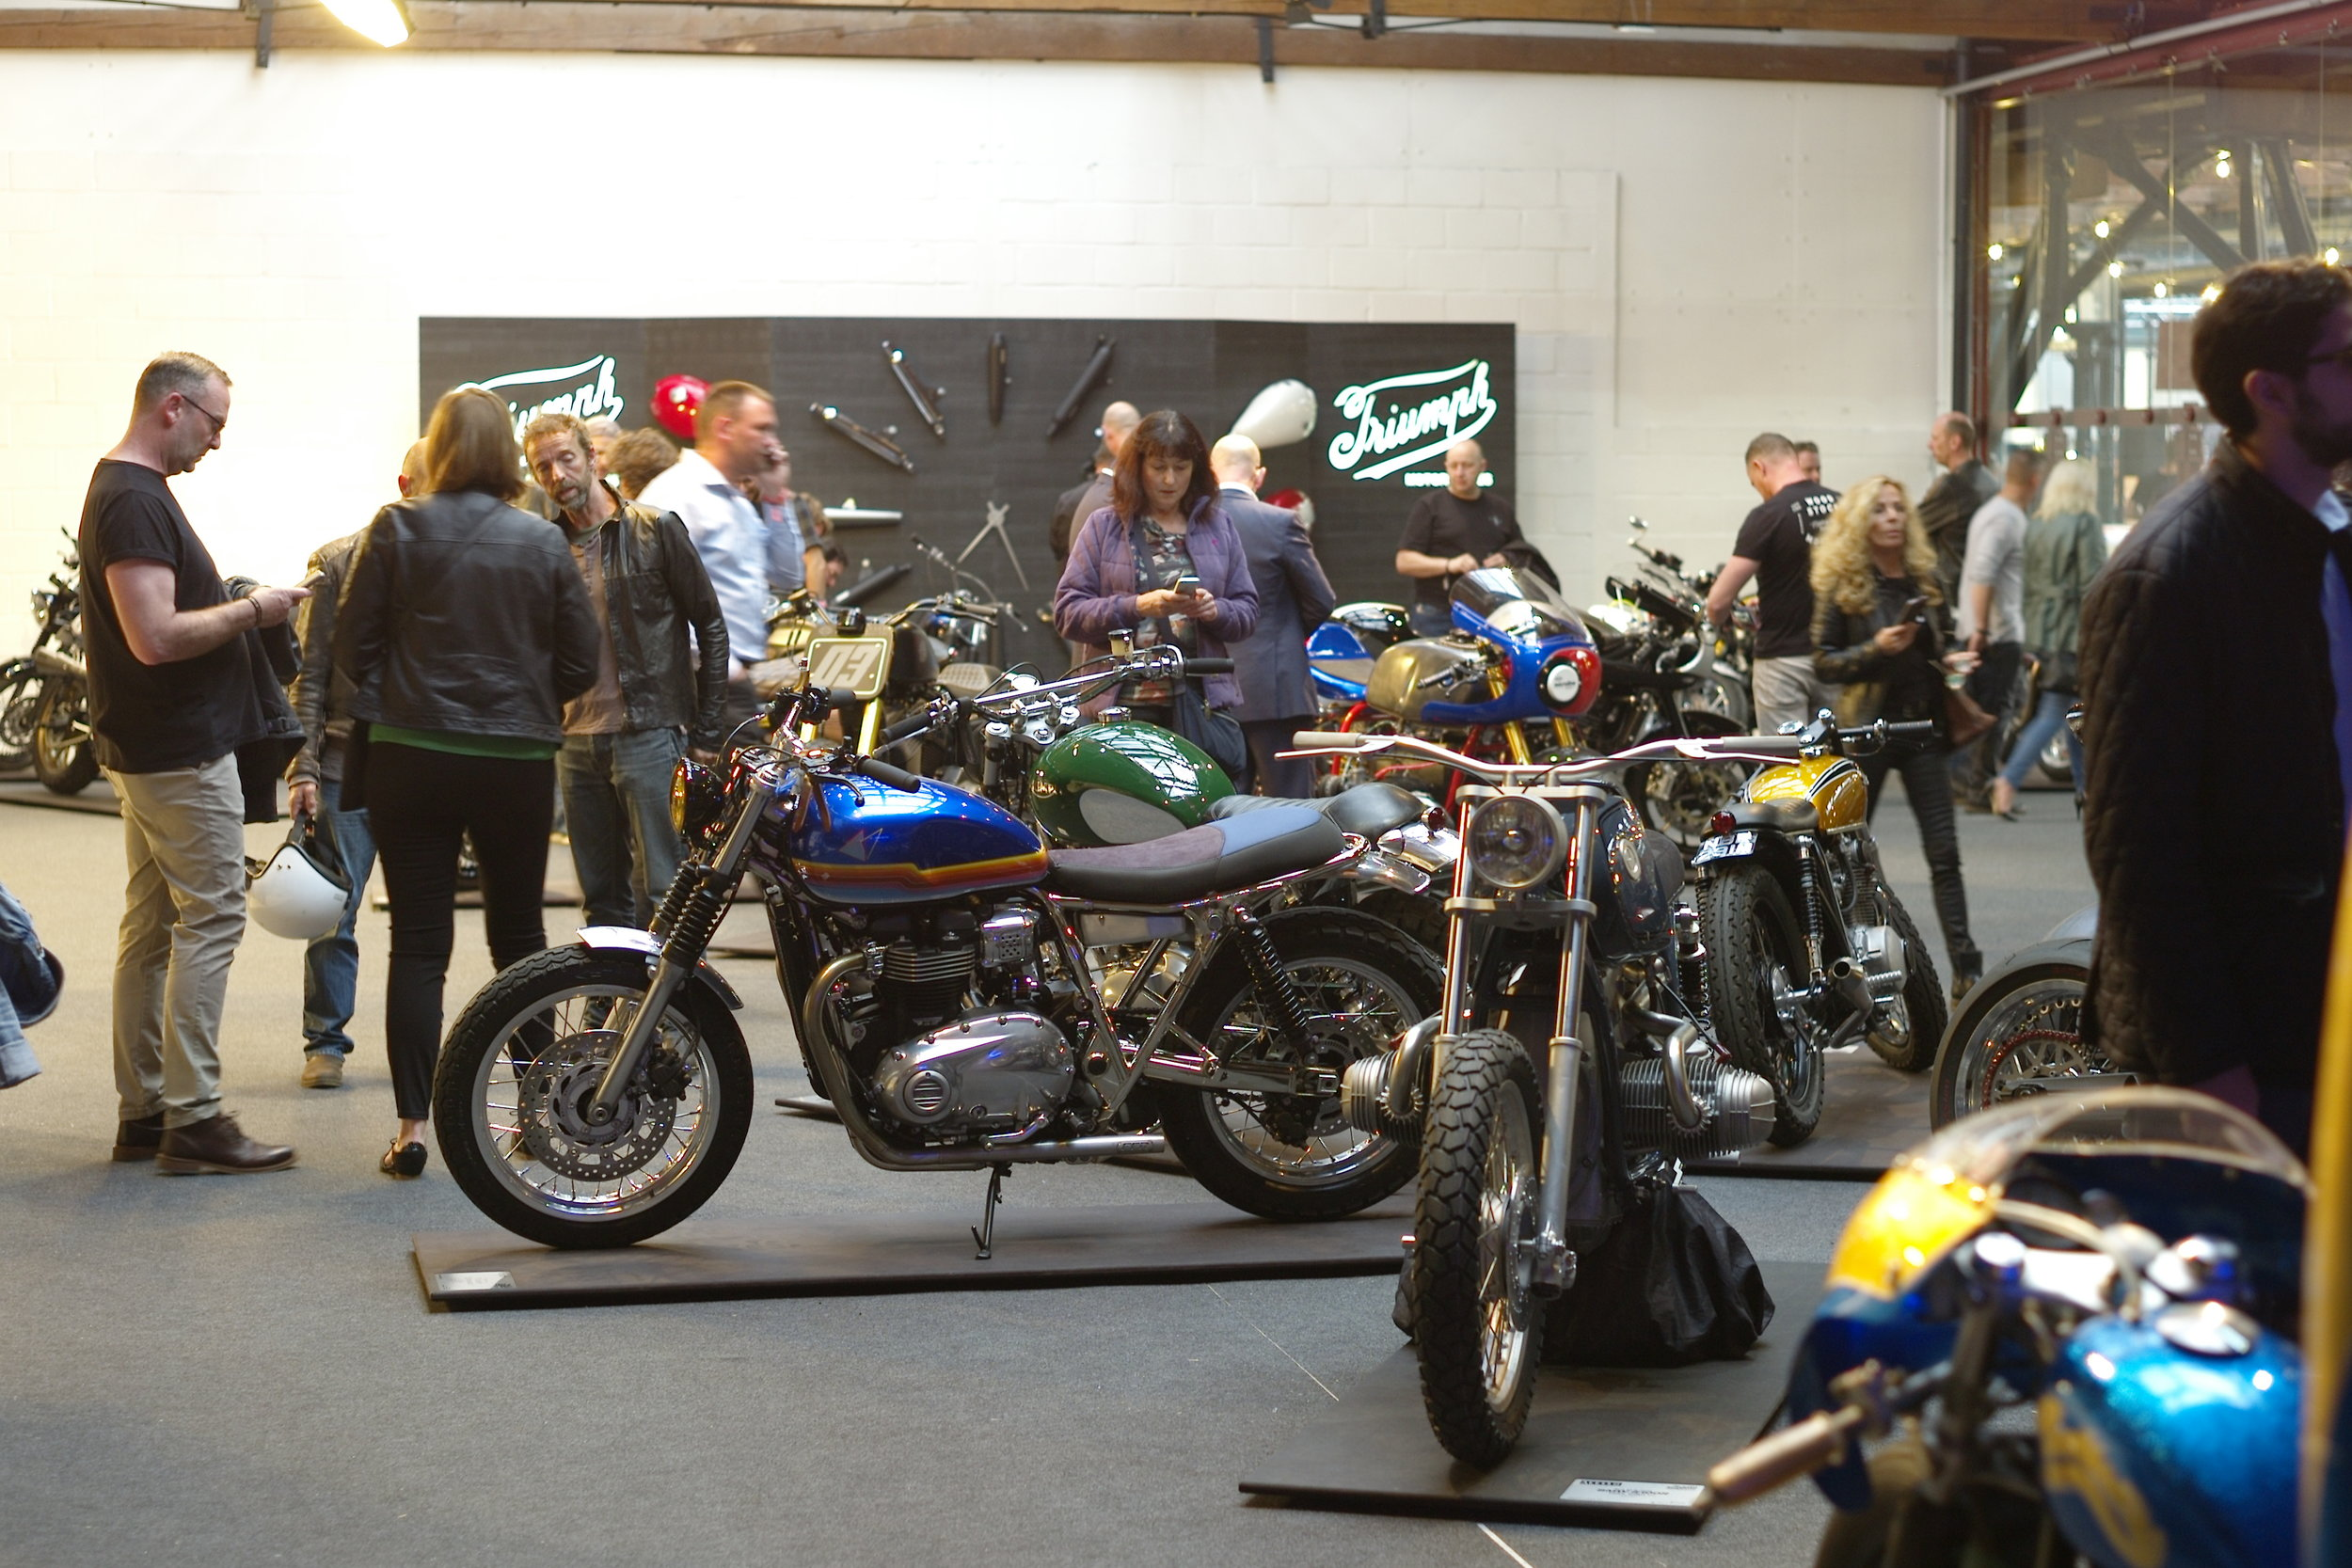 Casual snob - Bikeshed London 2018 1.JPG